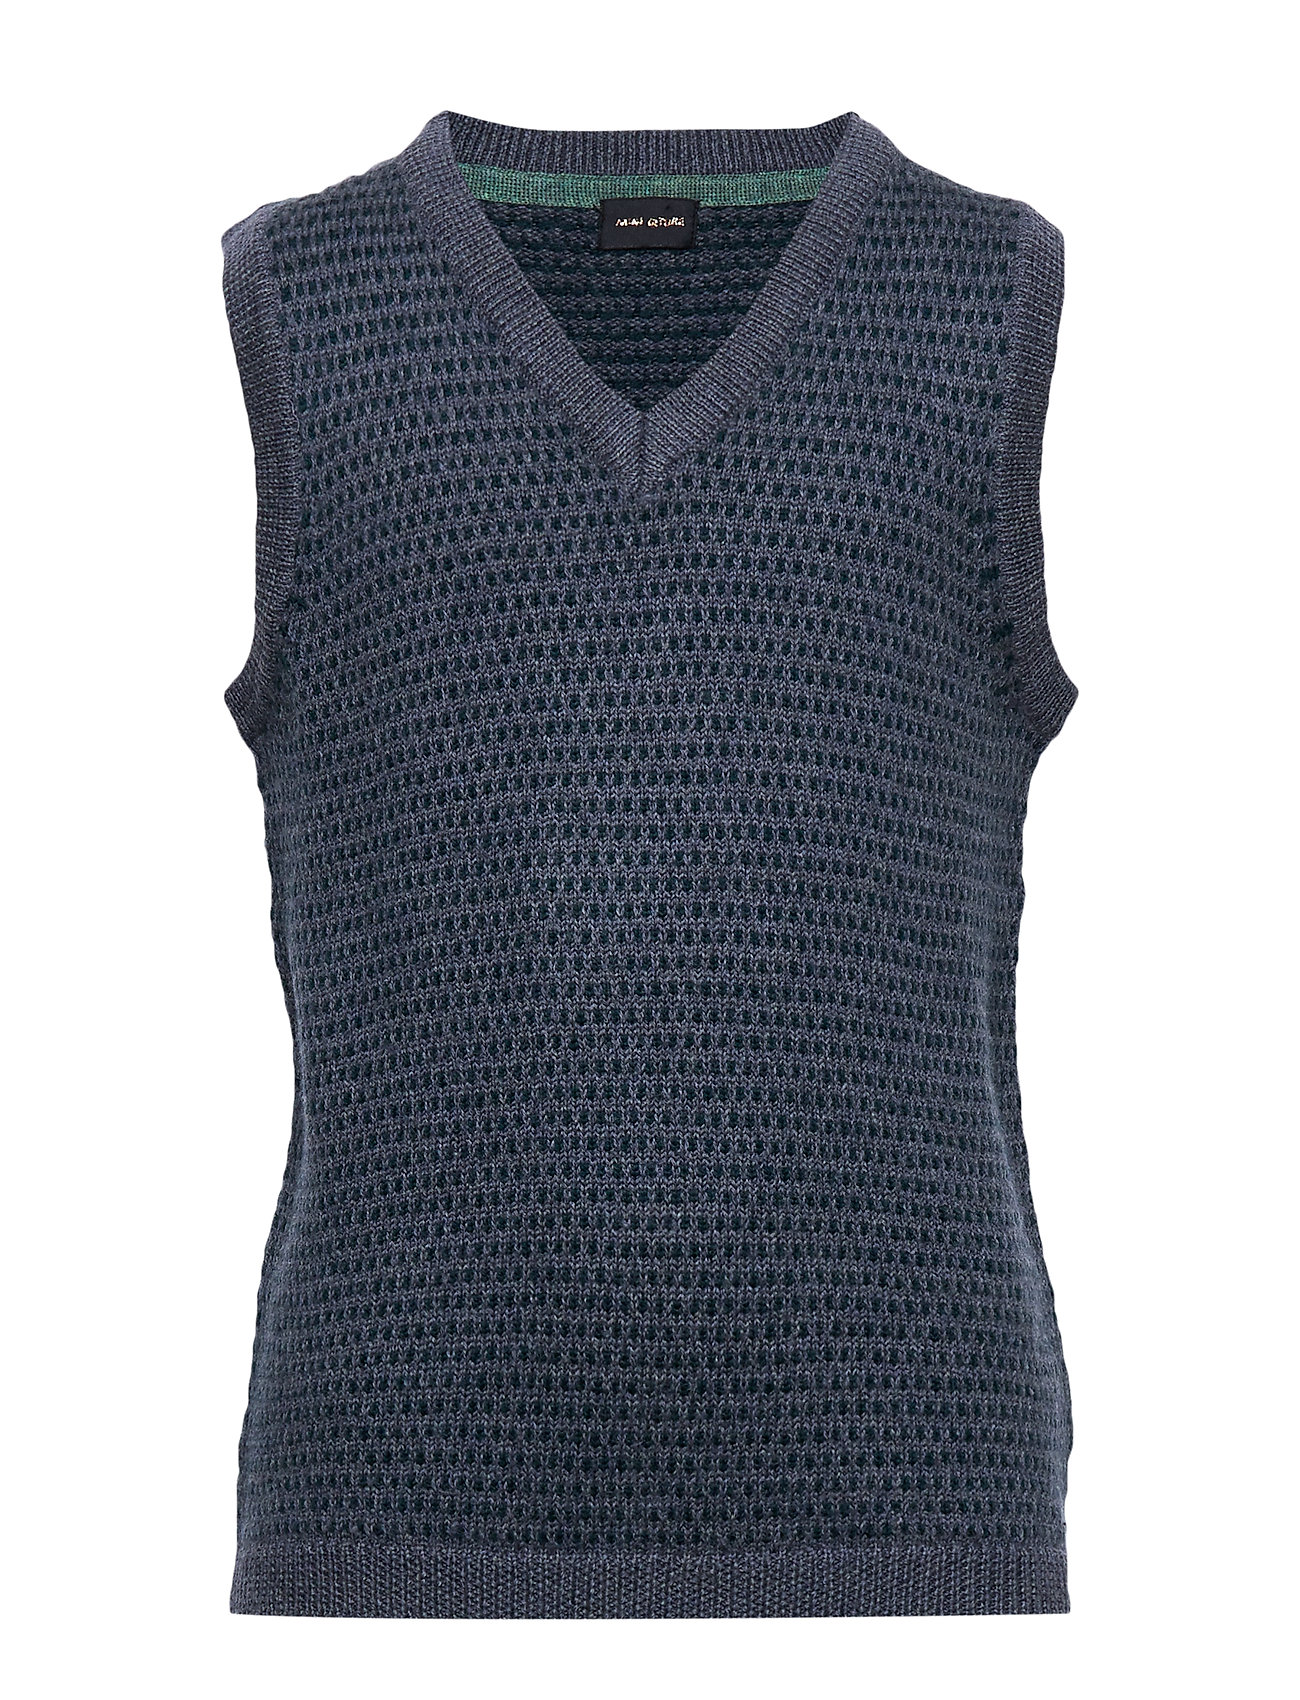 Mini A Ture Robbi Vest, K - BLUE NIGHTS